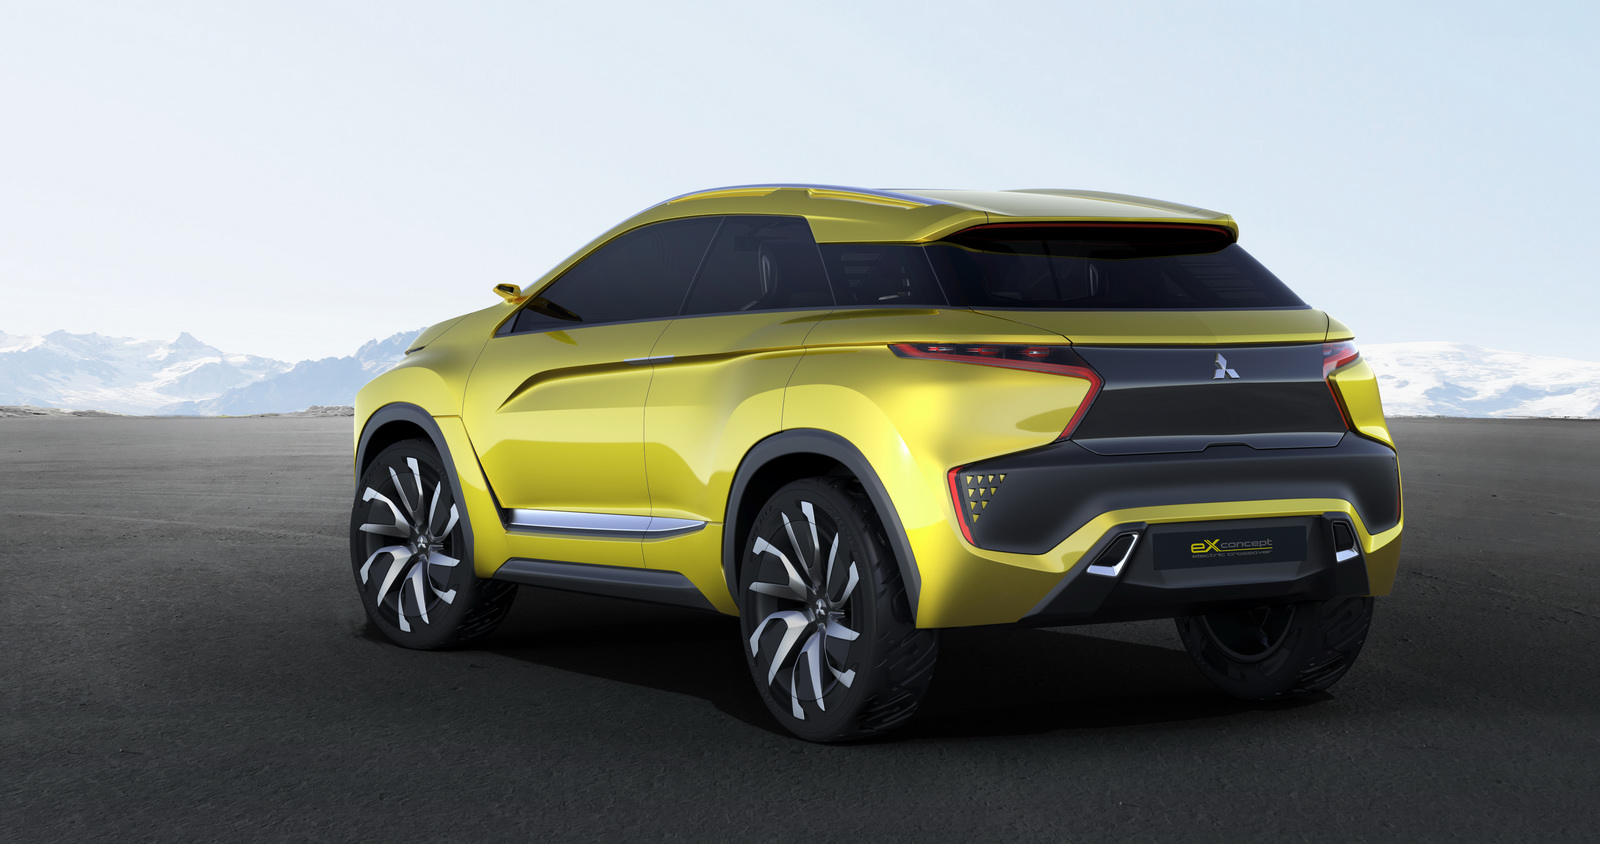 mitsubishi planning compact electric suv with 250 mile range by 2020. Black Bedroom Furniture Sets. Home Design Ideas